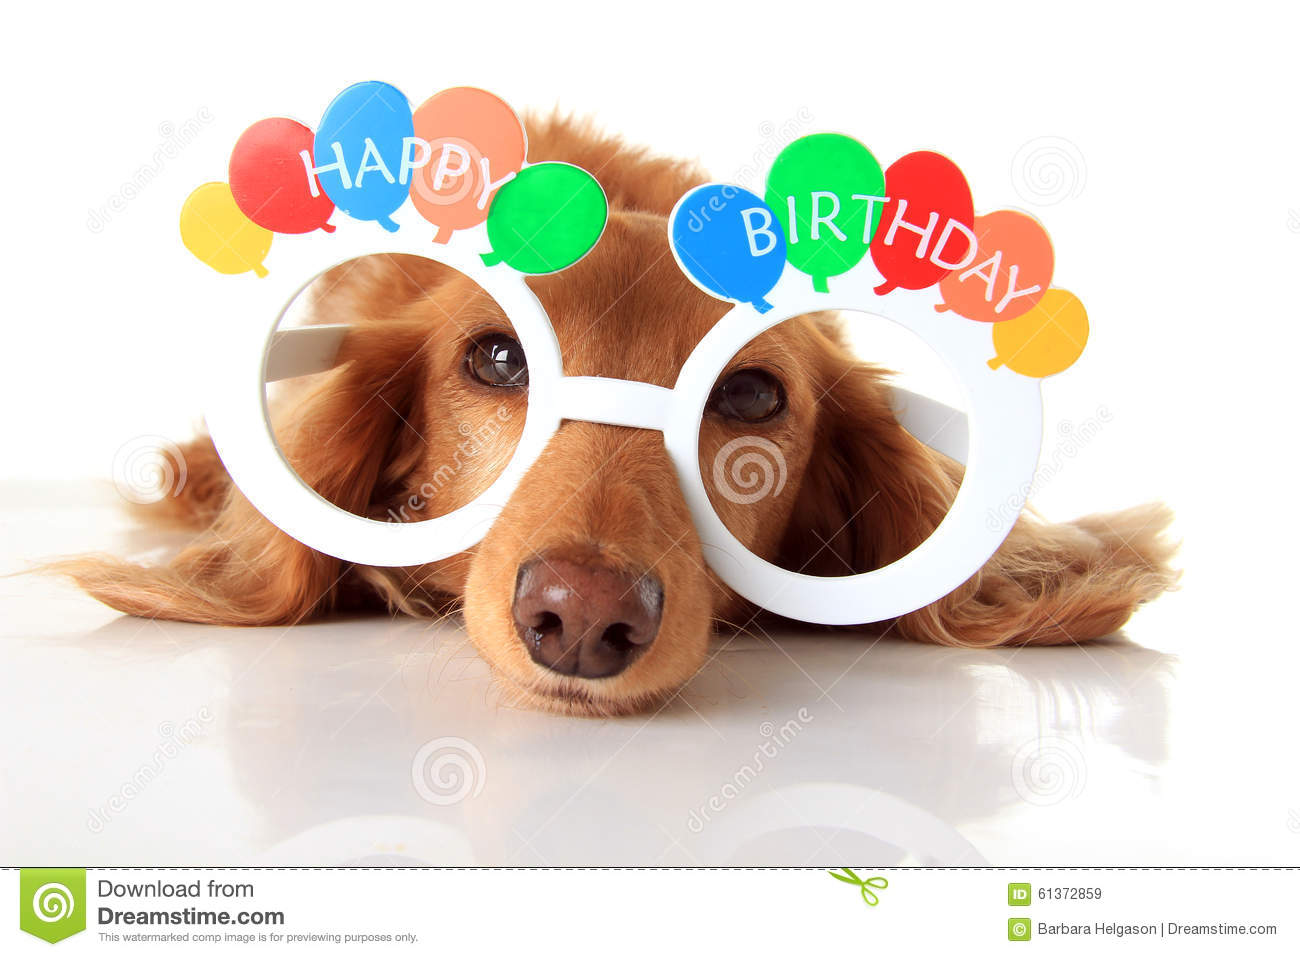 Dachshund Puppy Wearing Happy Birthday Glasses Also Available In Vertical